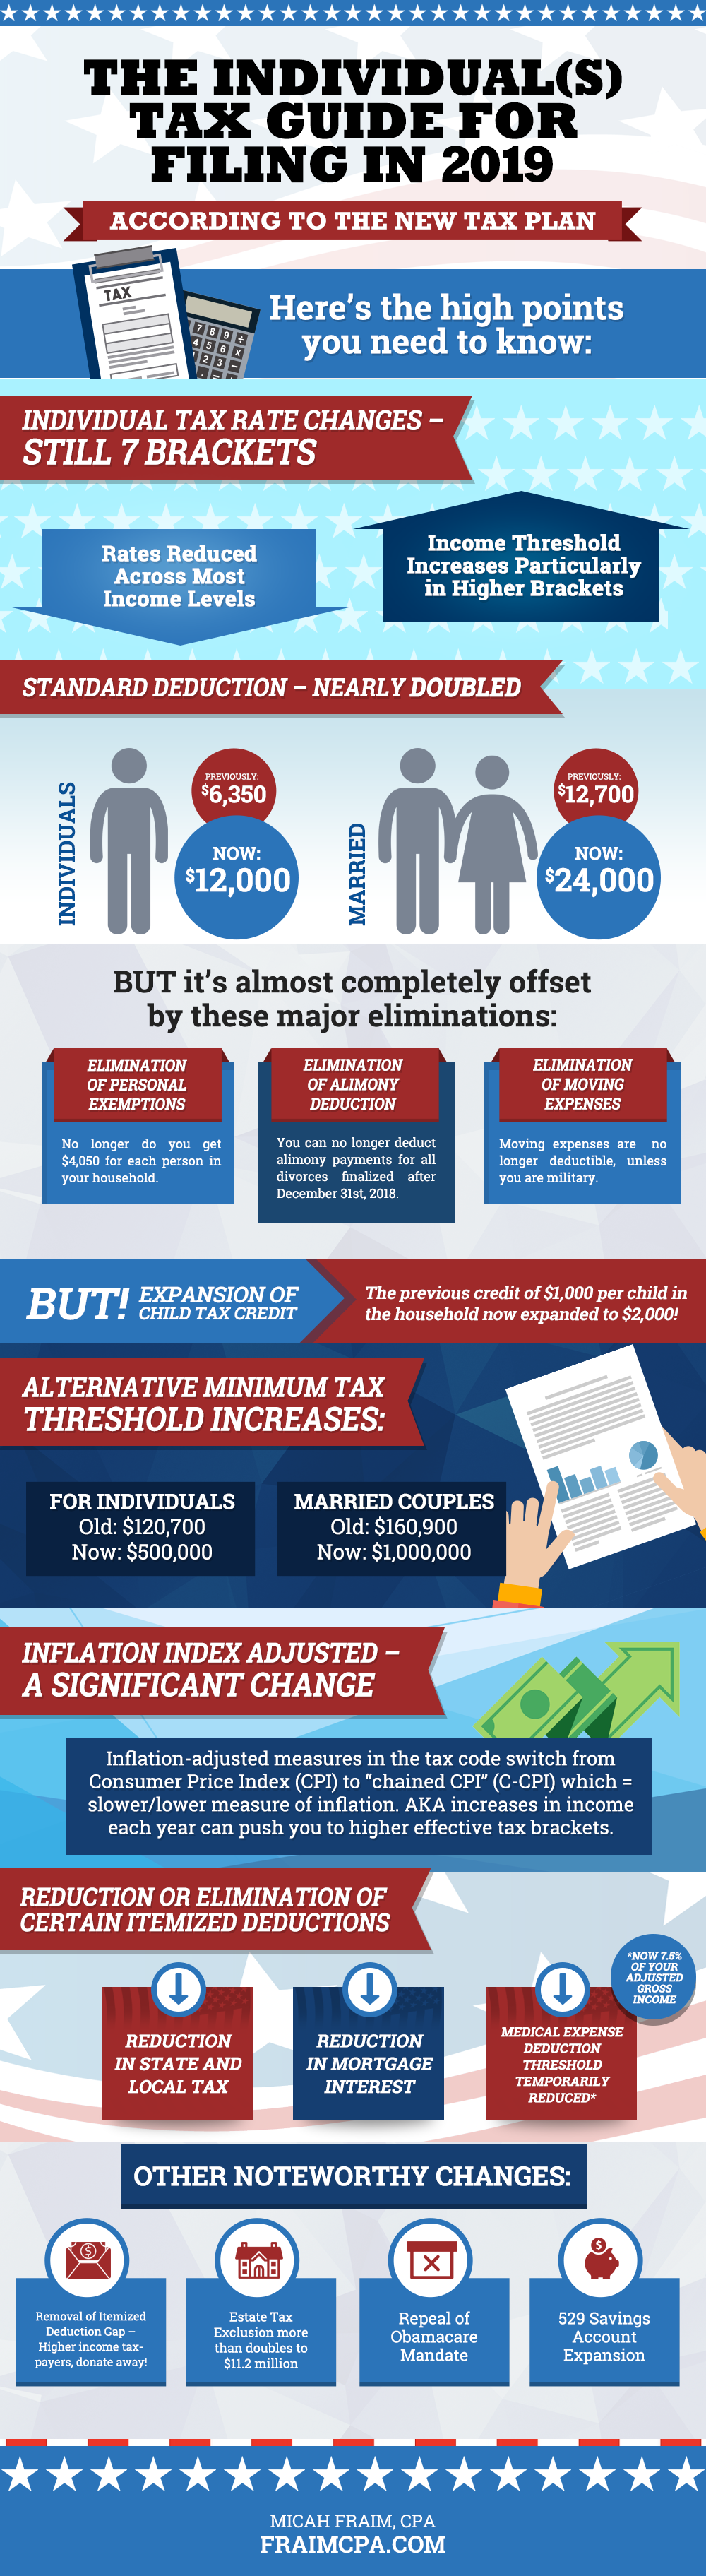 individual tax guide infographic